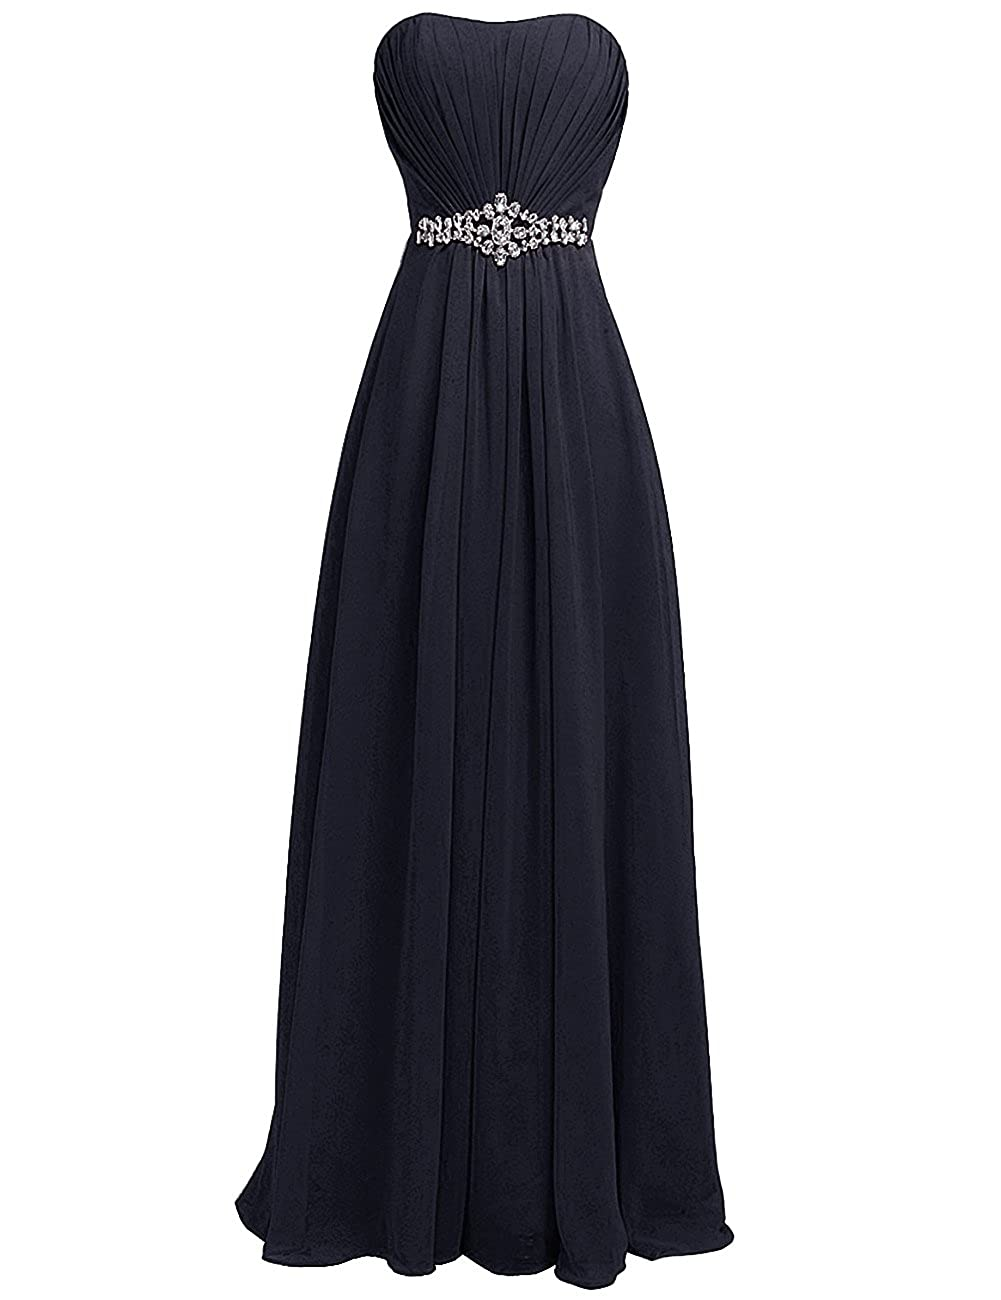 Navy bluee H.S.D Women's Strapless Rhinestone Sash Long Bridesmaid Dress Evening Gown